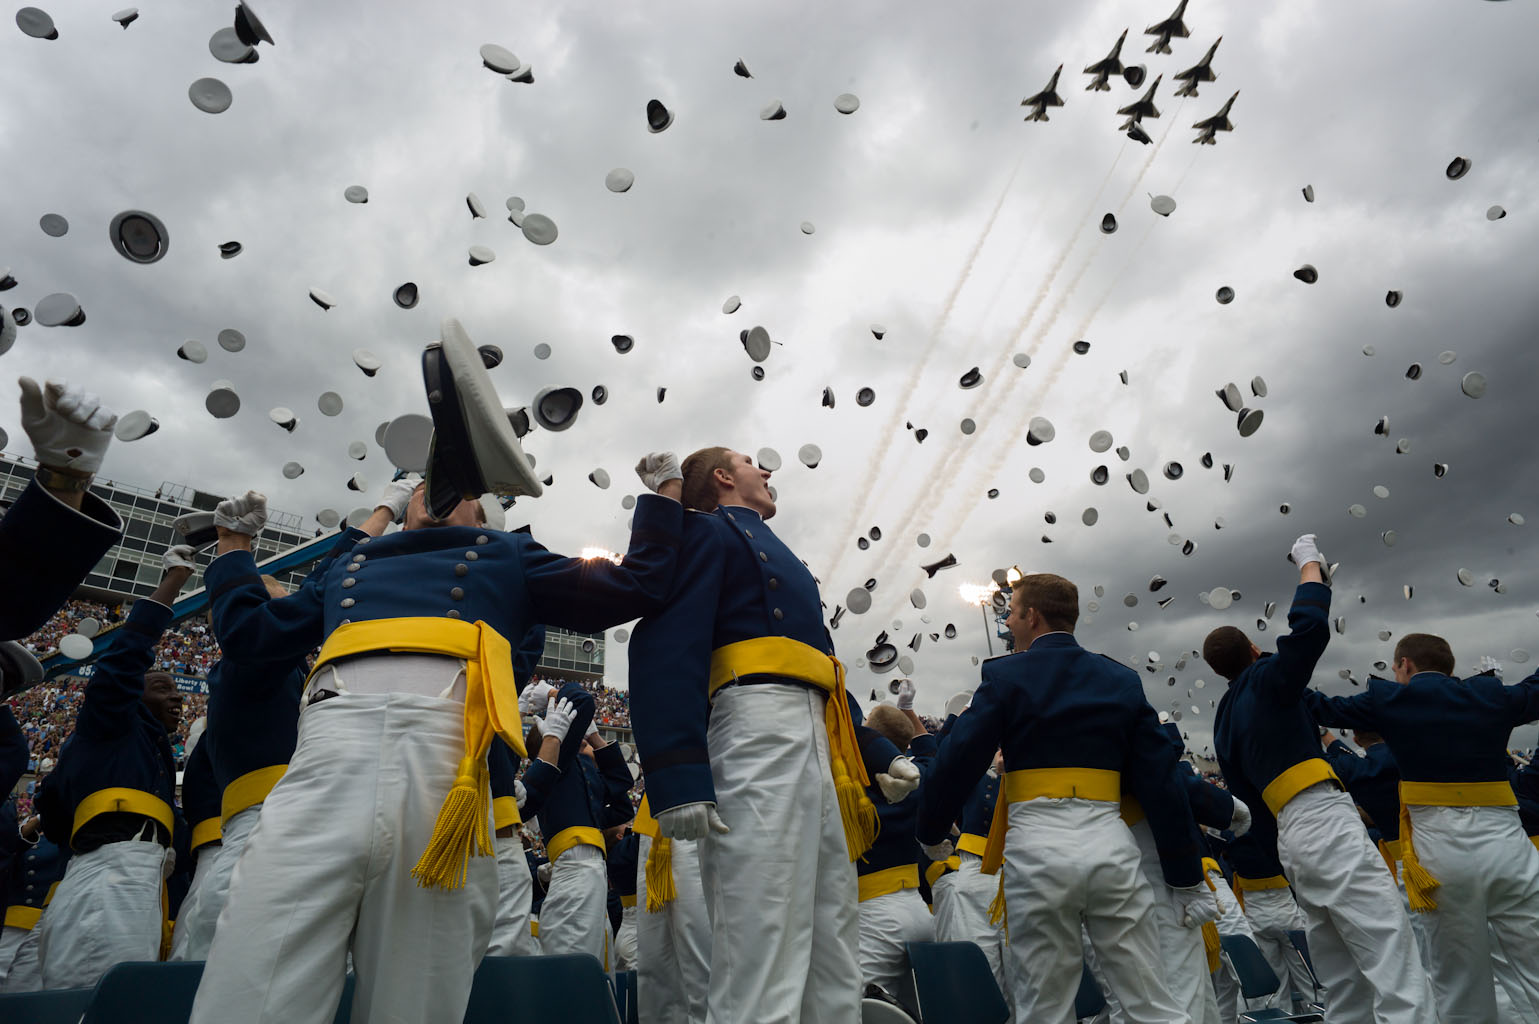 Graduates toss their hats as the Thunderbirds flyover during the United States Air Force Academy commencement ceremony (May 23, 2012)